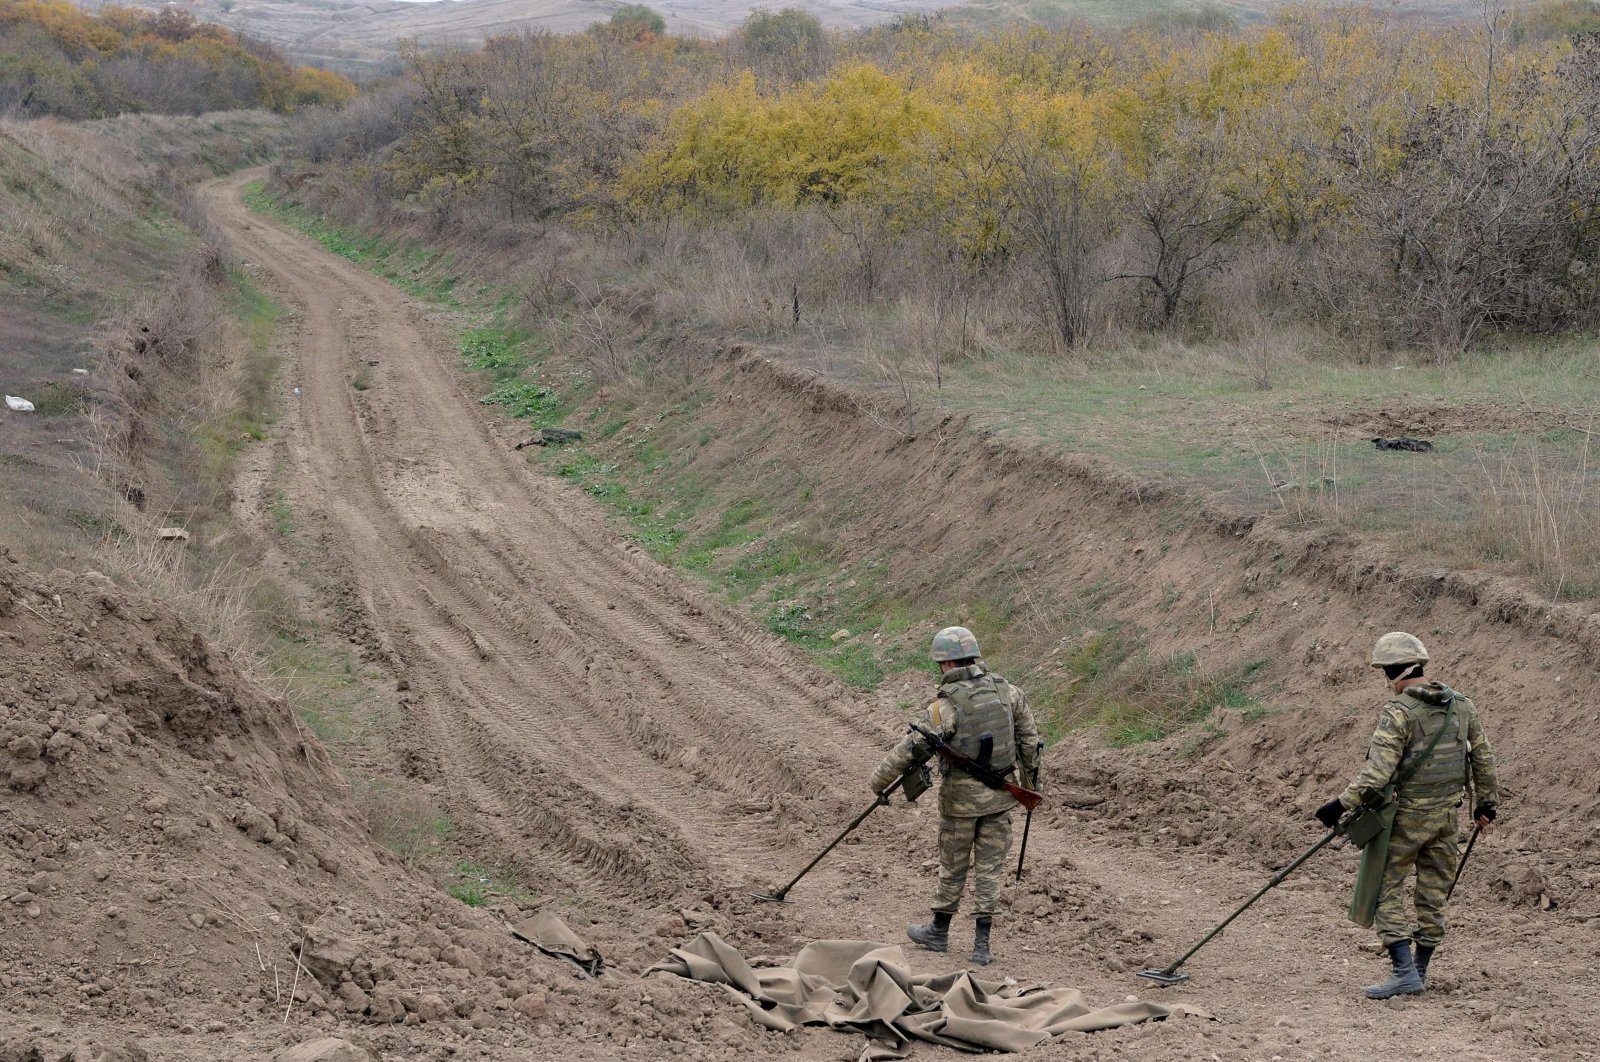 Azerbaijan military sappers clear mines in the countryside outside the town of Fuzuli, Azerbaijan, Nov. 26, 2020. (AFP Photo)